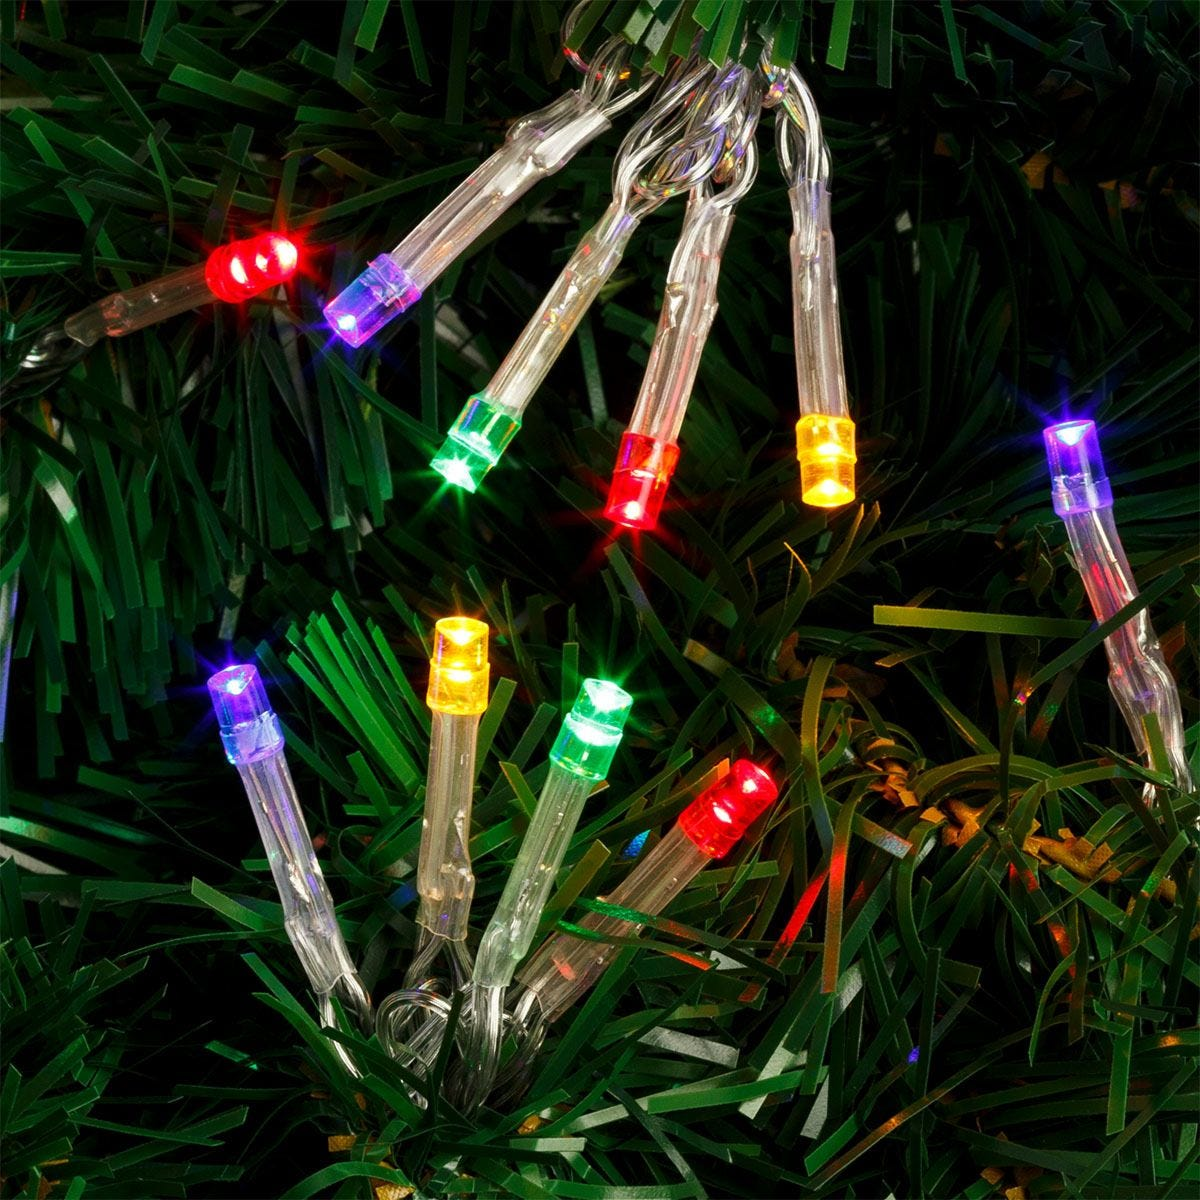 Robert Dyas Battery Operated 400 Transparent String Lights - Multicoloured